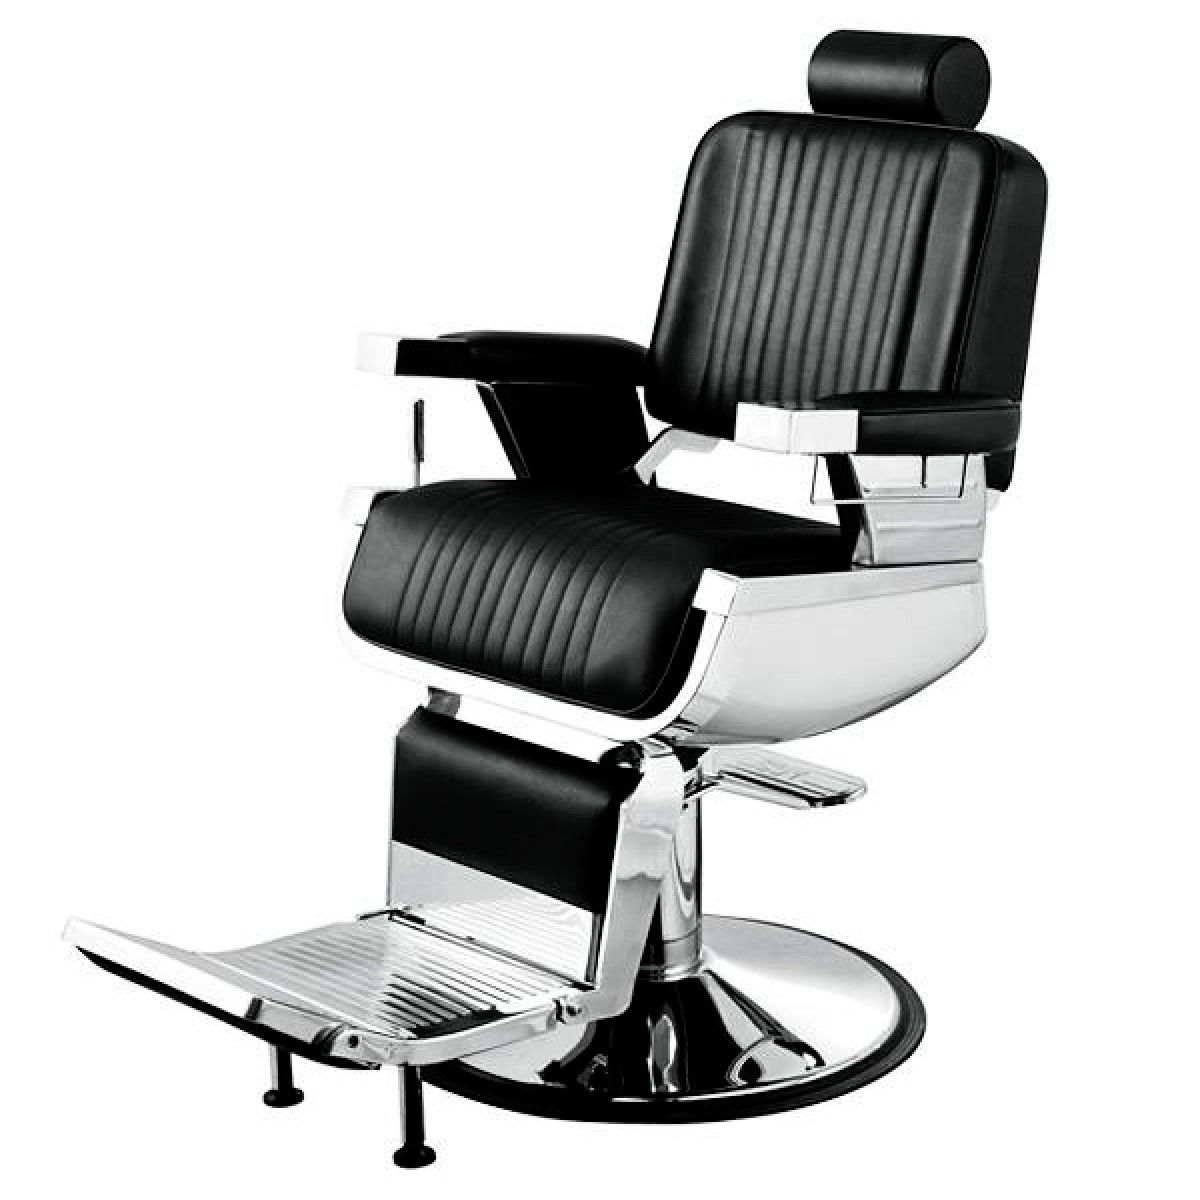 Constantine antique barber chair barber chairs for Salon equipment for sale cheap